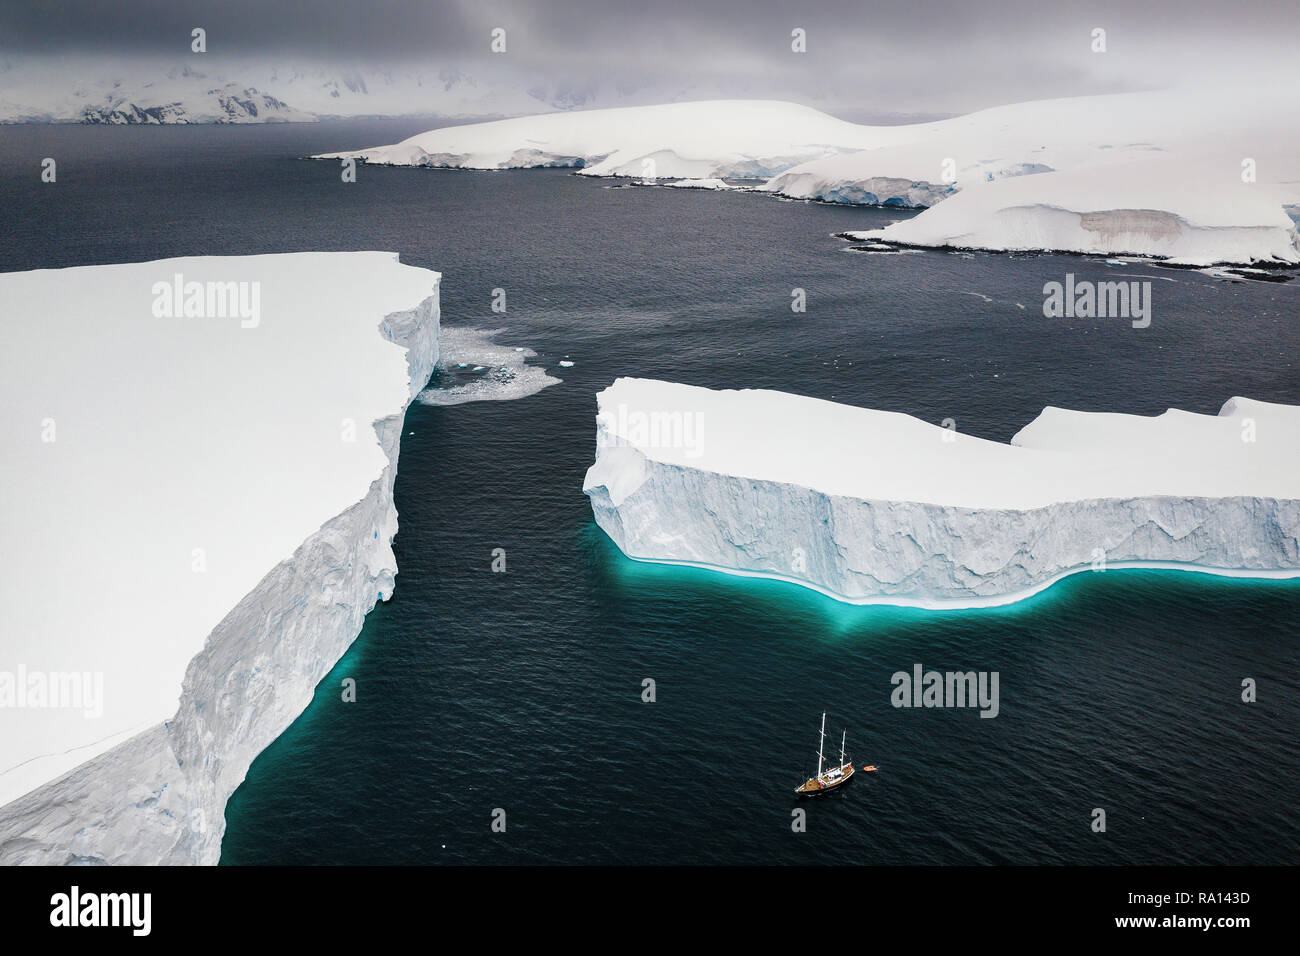 Sailing through enormously huge icebergs near Melchior islands in Antarctica - Stock Image